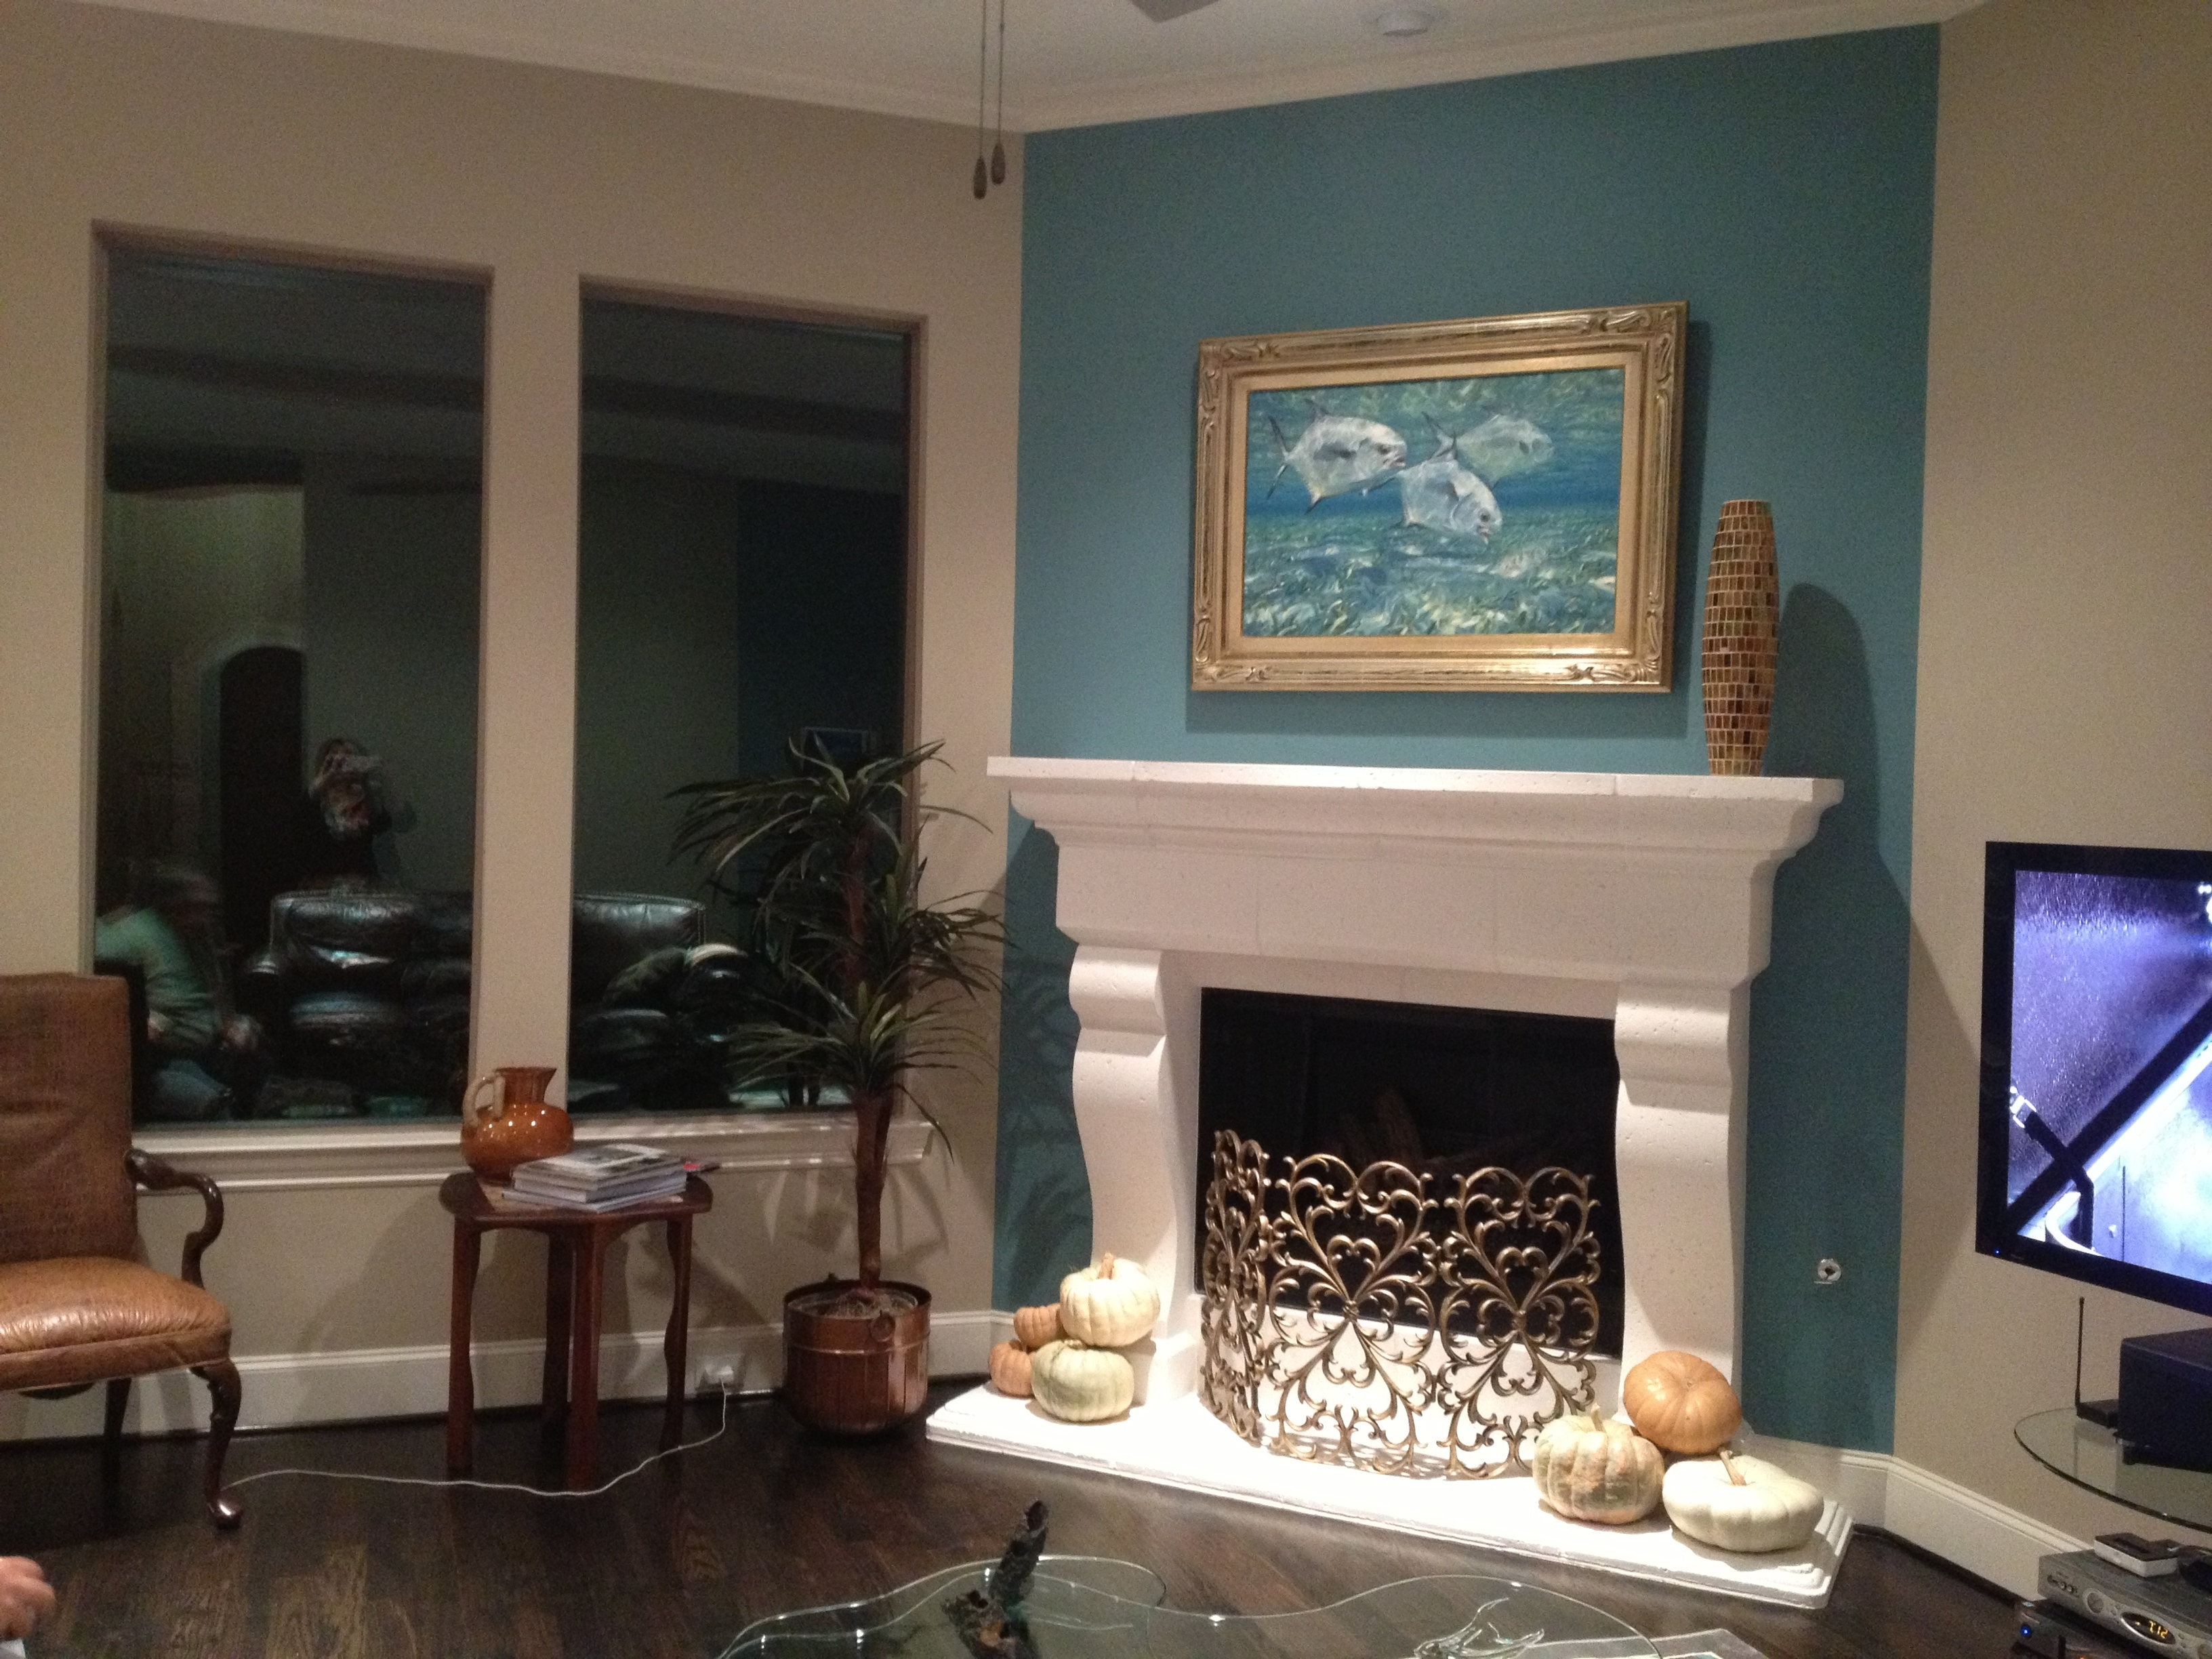 Fireplace Accent Wall Complements Painting (View 11 of 15)